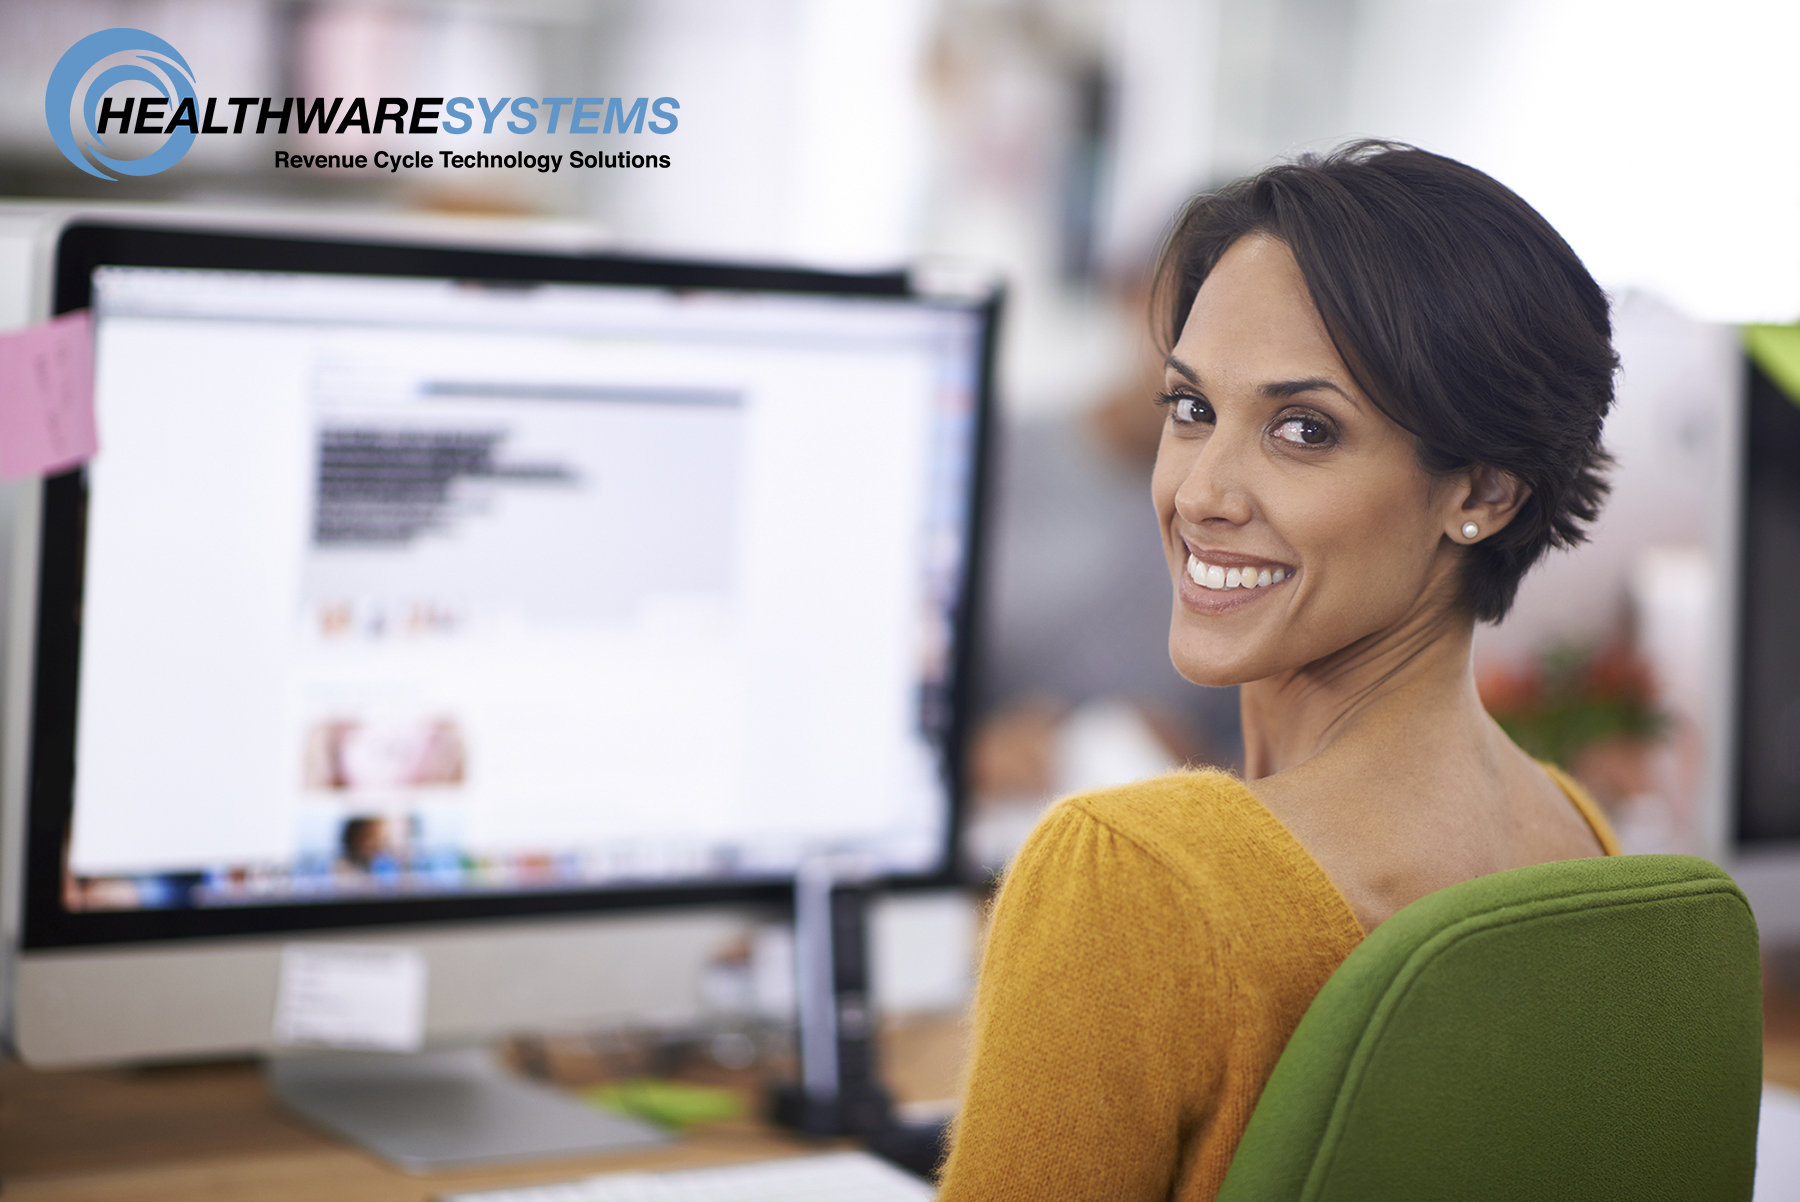 Employee Satisfaction: A healthcare employee smiles at her desk.